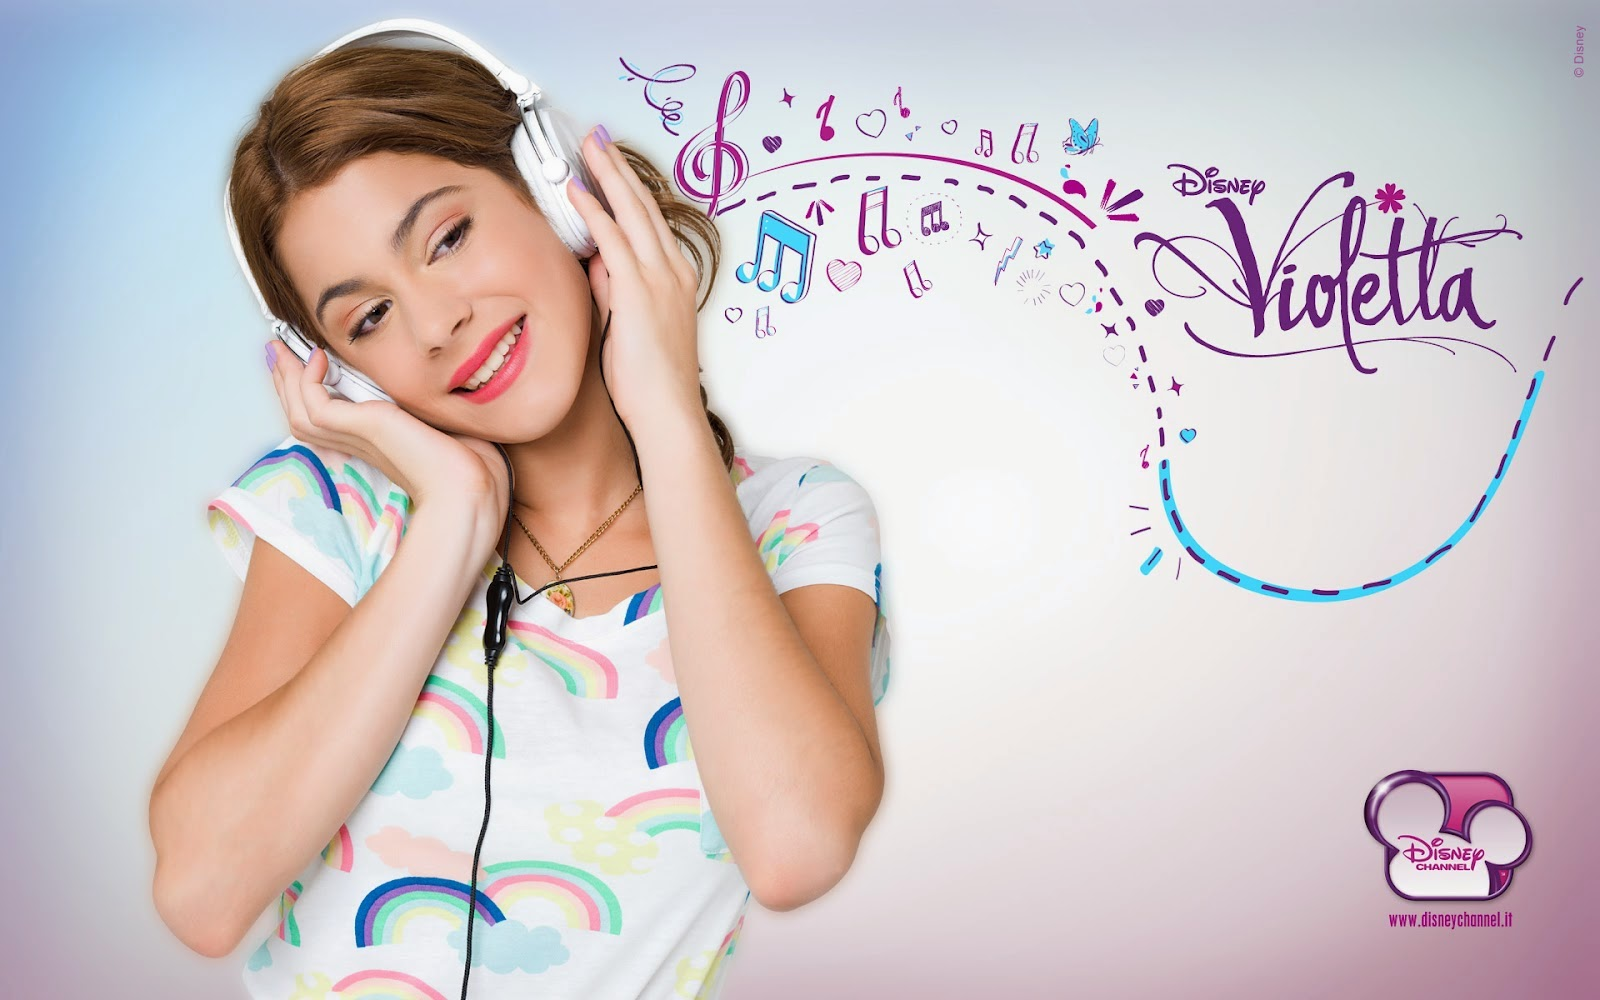 http://musique.ados.fr/news/violetta-nouvelle-saison-disney-channel-nt1-grand-rex_article4282.html